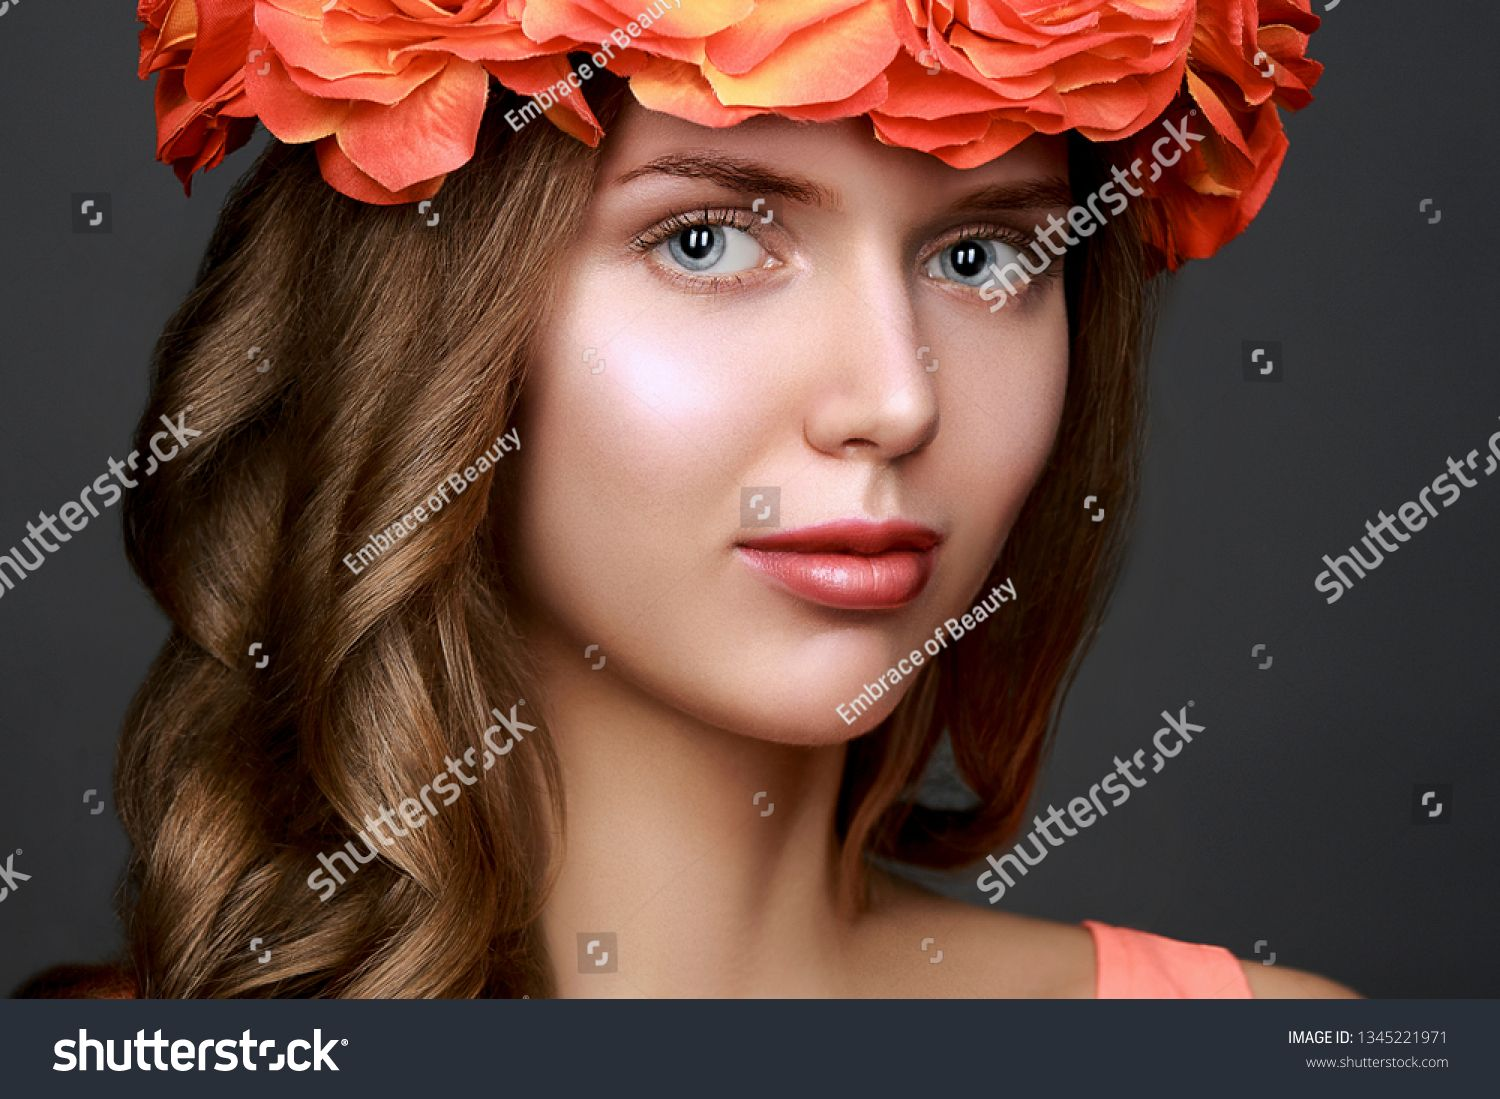 Beautiful model girl with a stylish hair and make-up in a bright rose flowercrown on a dark background #Sponsored , #Affiliate, #stylish#hair#girl#Beautiful